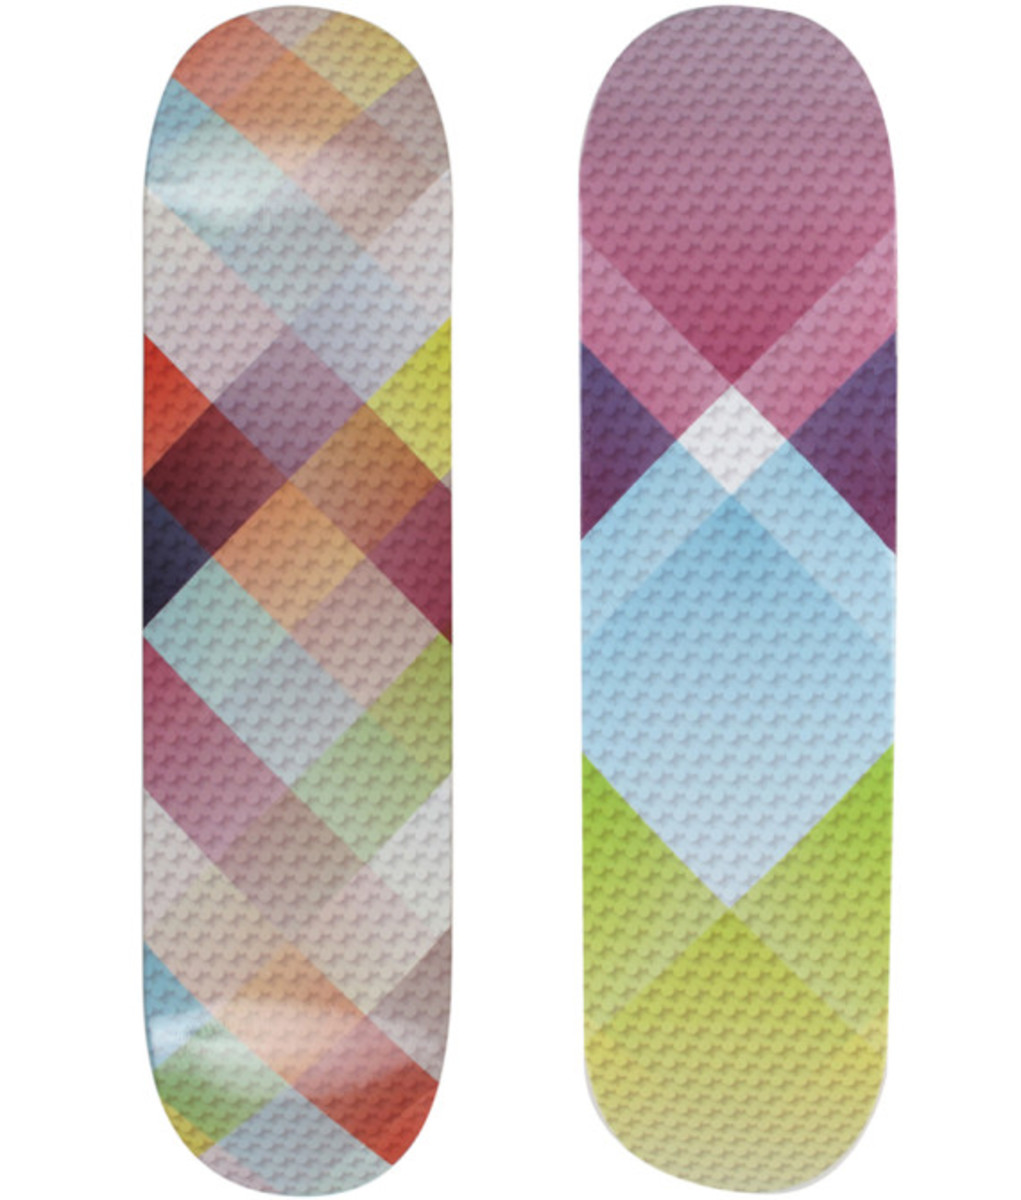 odin-summer-2013-limited-edition-skateboard-collection-04